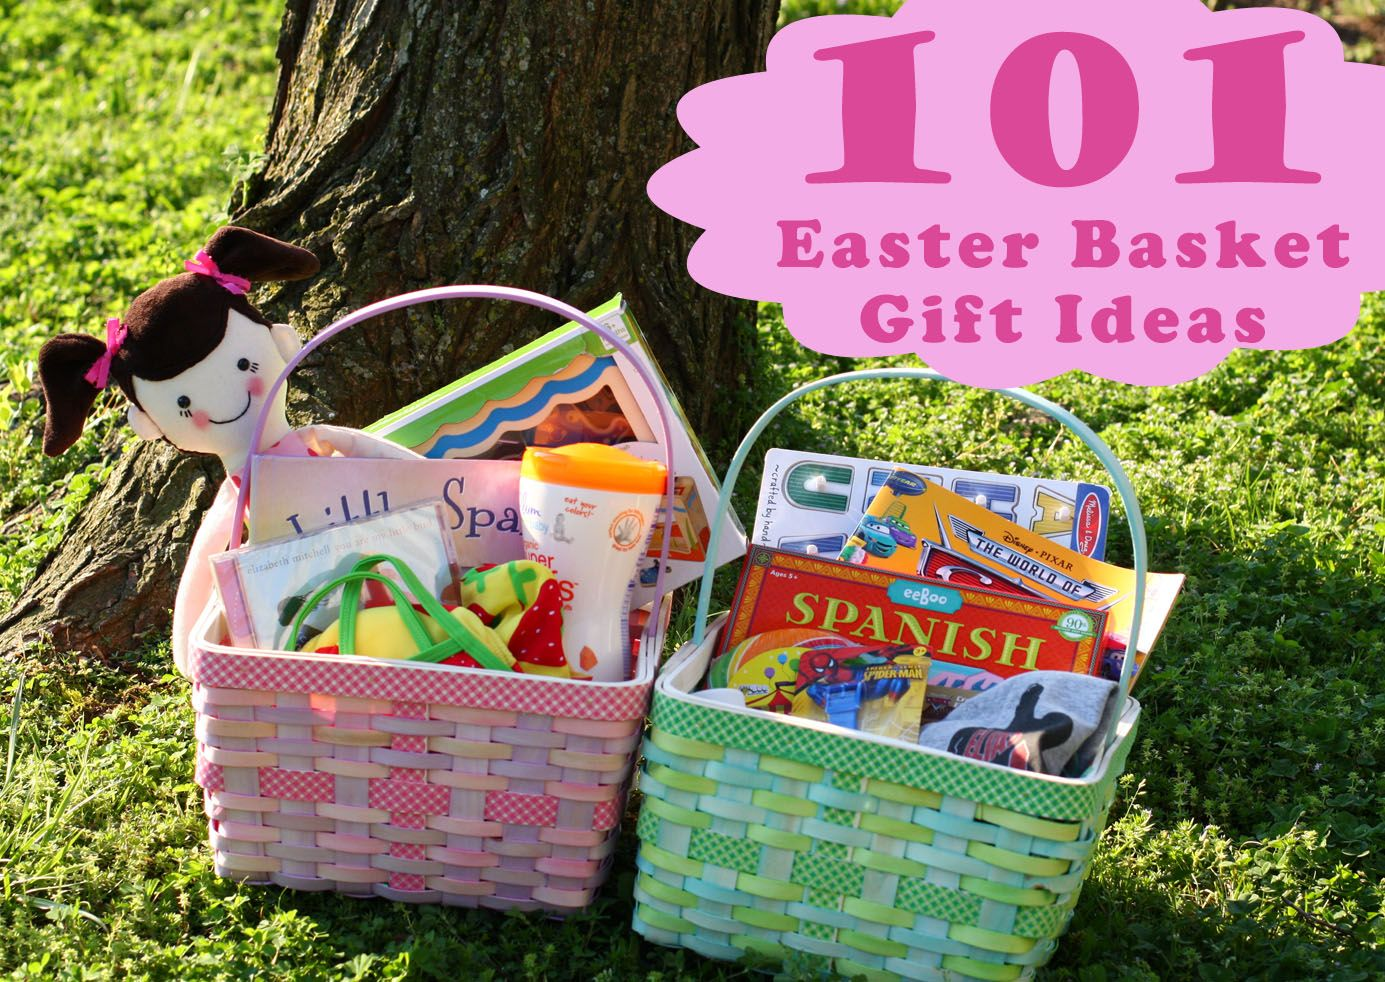 101 easter basket gift ideas from the mom creative easter 101 easter basket gift ideas from the mom creative great ides for easter baskets or christmas stockings great tip buy things throughout the year when negle Image collections